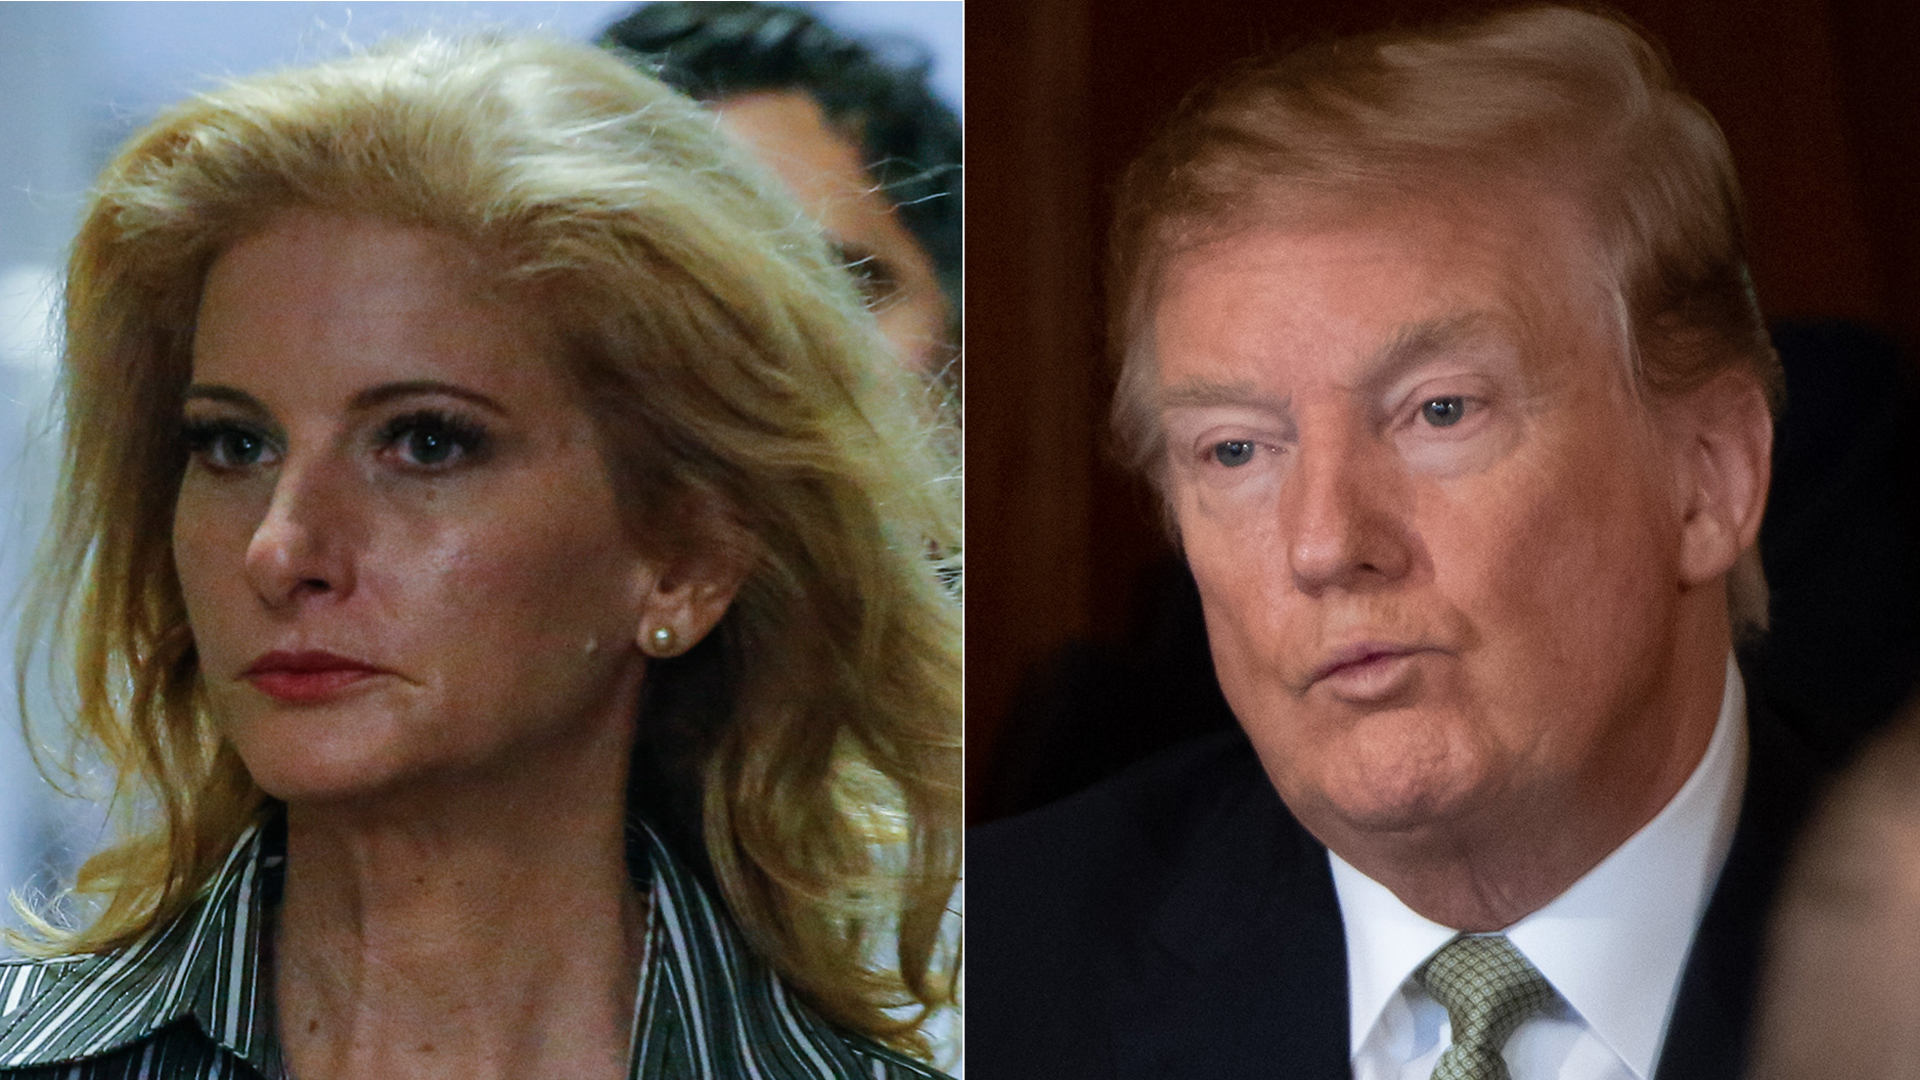 "From left to right: Summer Zervos, Orange County woman and former ""Apprentice"" contestant, arrives to New York County Criminal Court on Dec. 5, 2017, in New York. (Credit: KENA BETANCUR/AFP/Getty Images) Donald Trump attends the Friends of Ireland Luncheon at the U.S. Capitol in Washington, D.C., March 14, 2019. (Credit: SAUL LOEB / AFP/ Getty Images)"